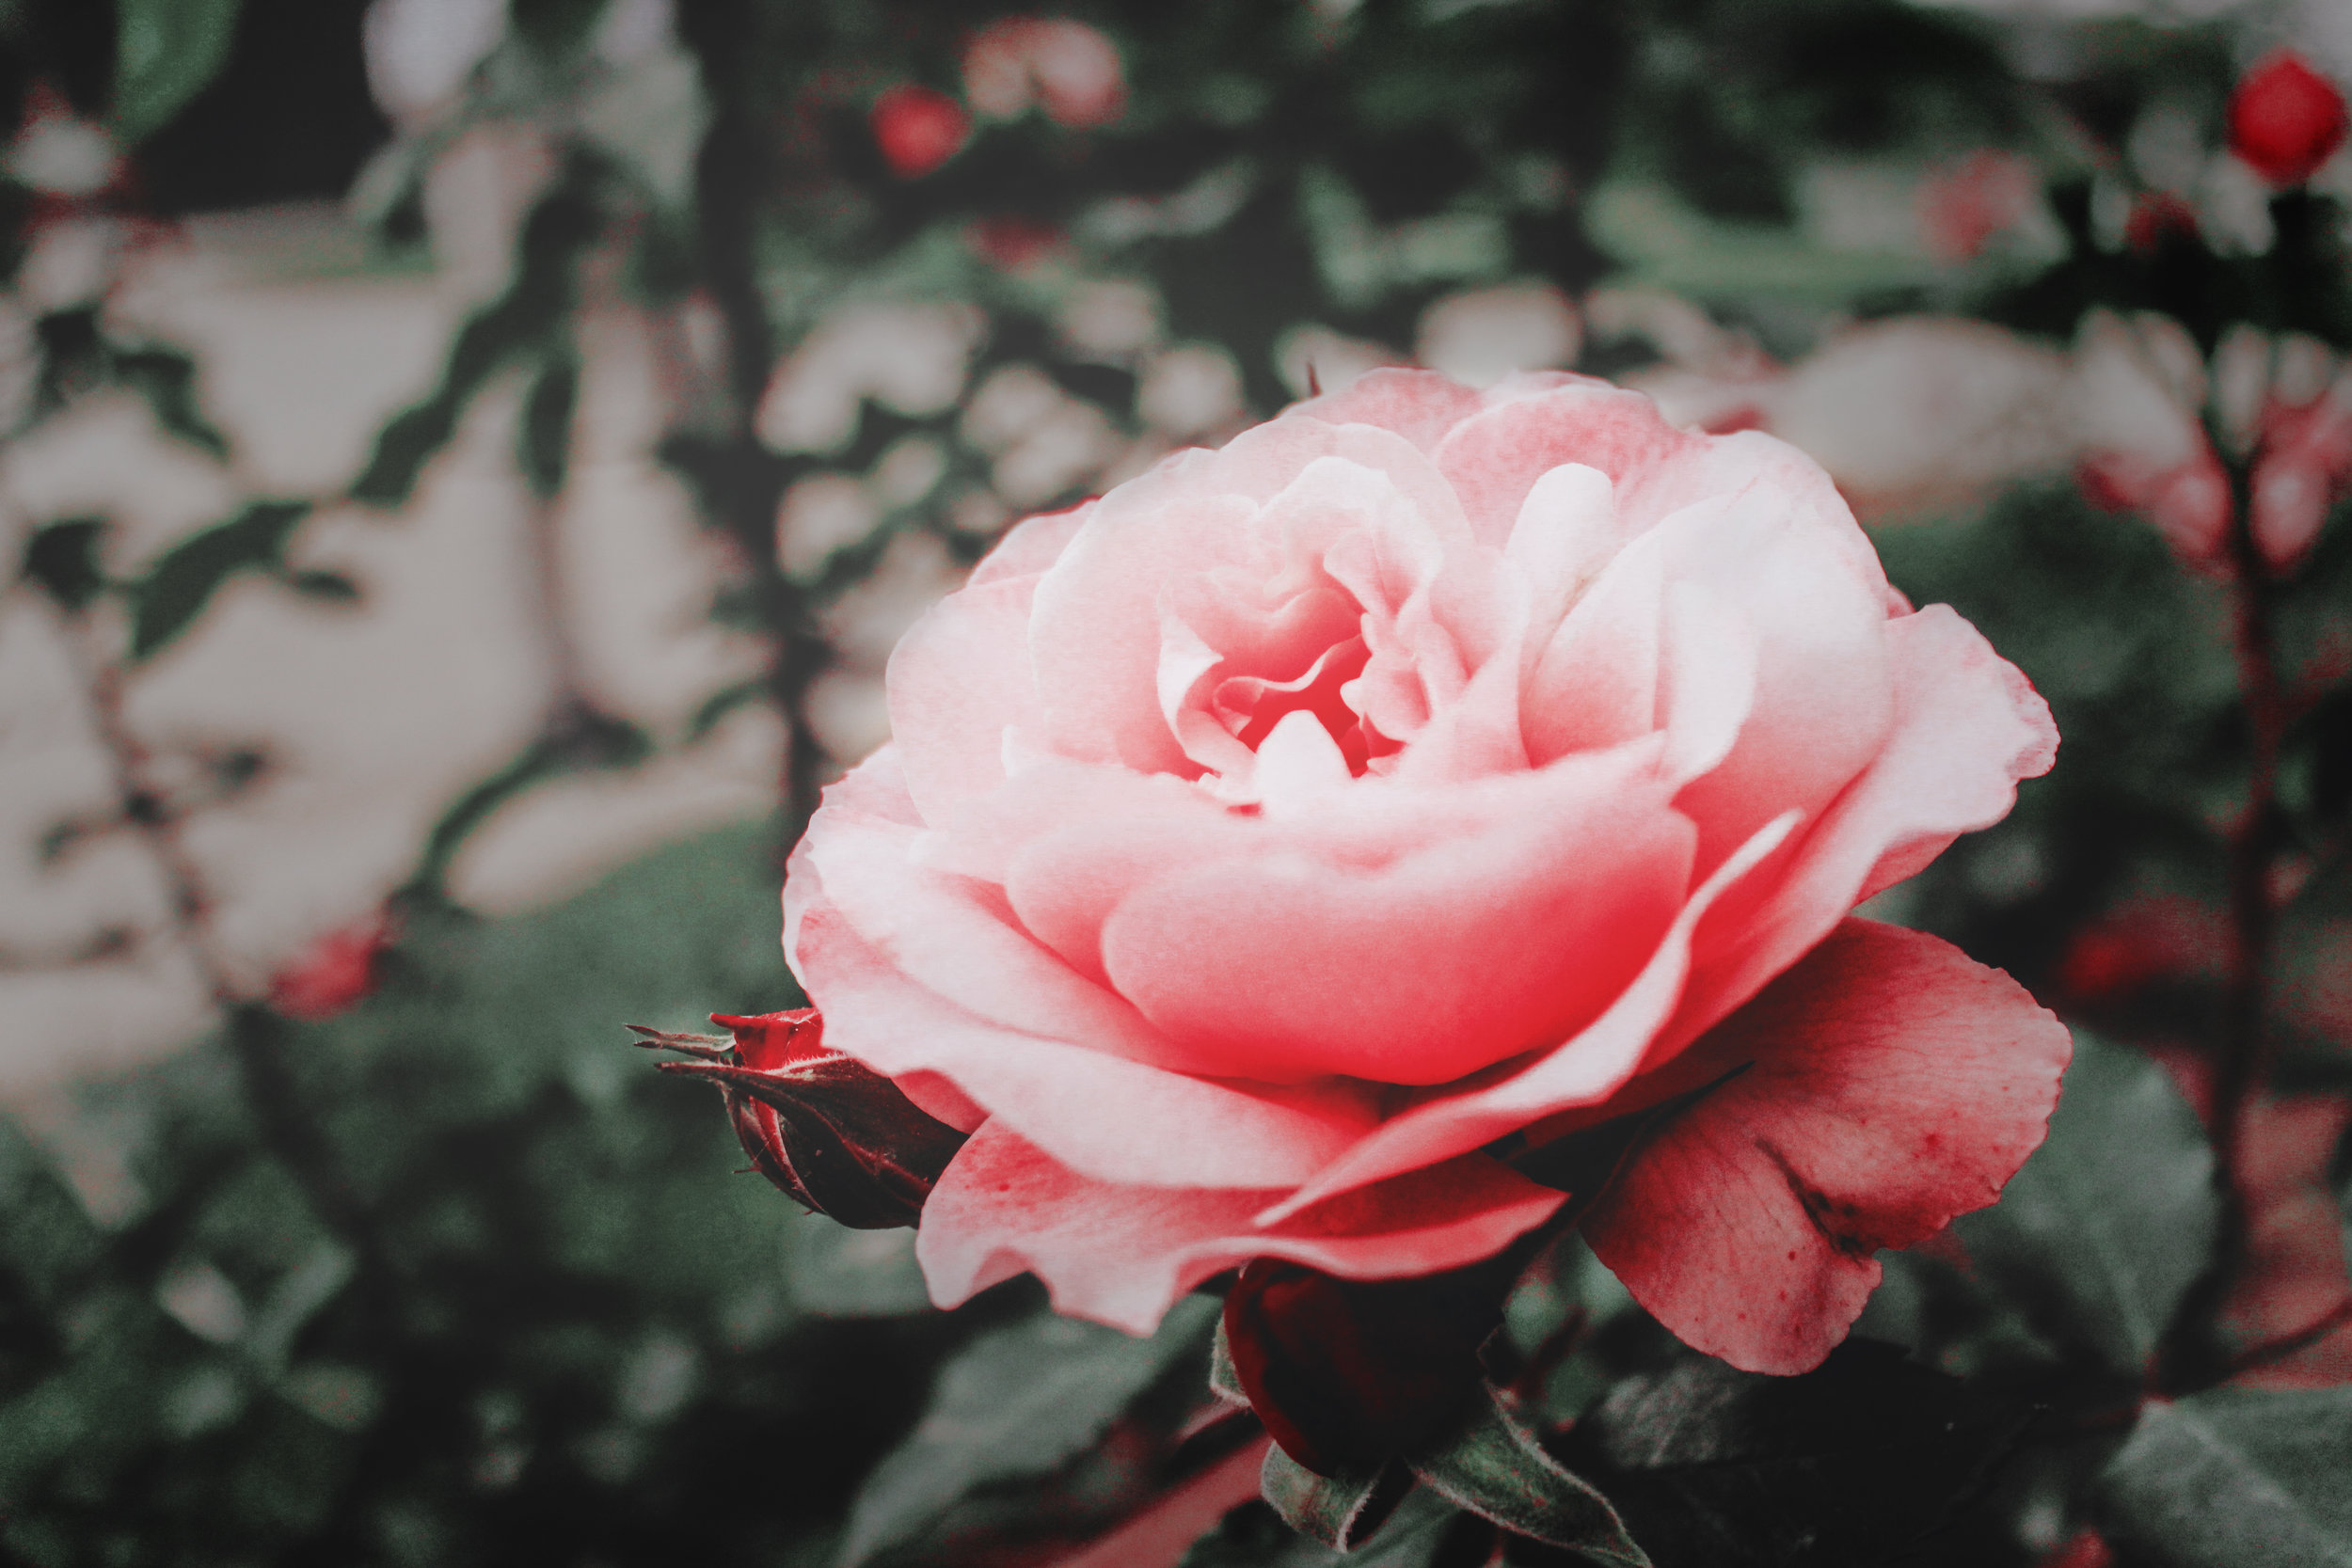 Roses help to move energy -